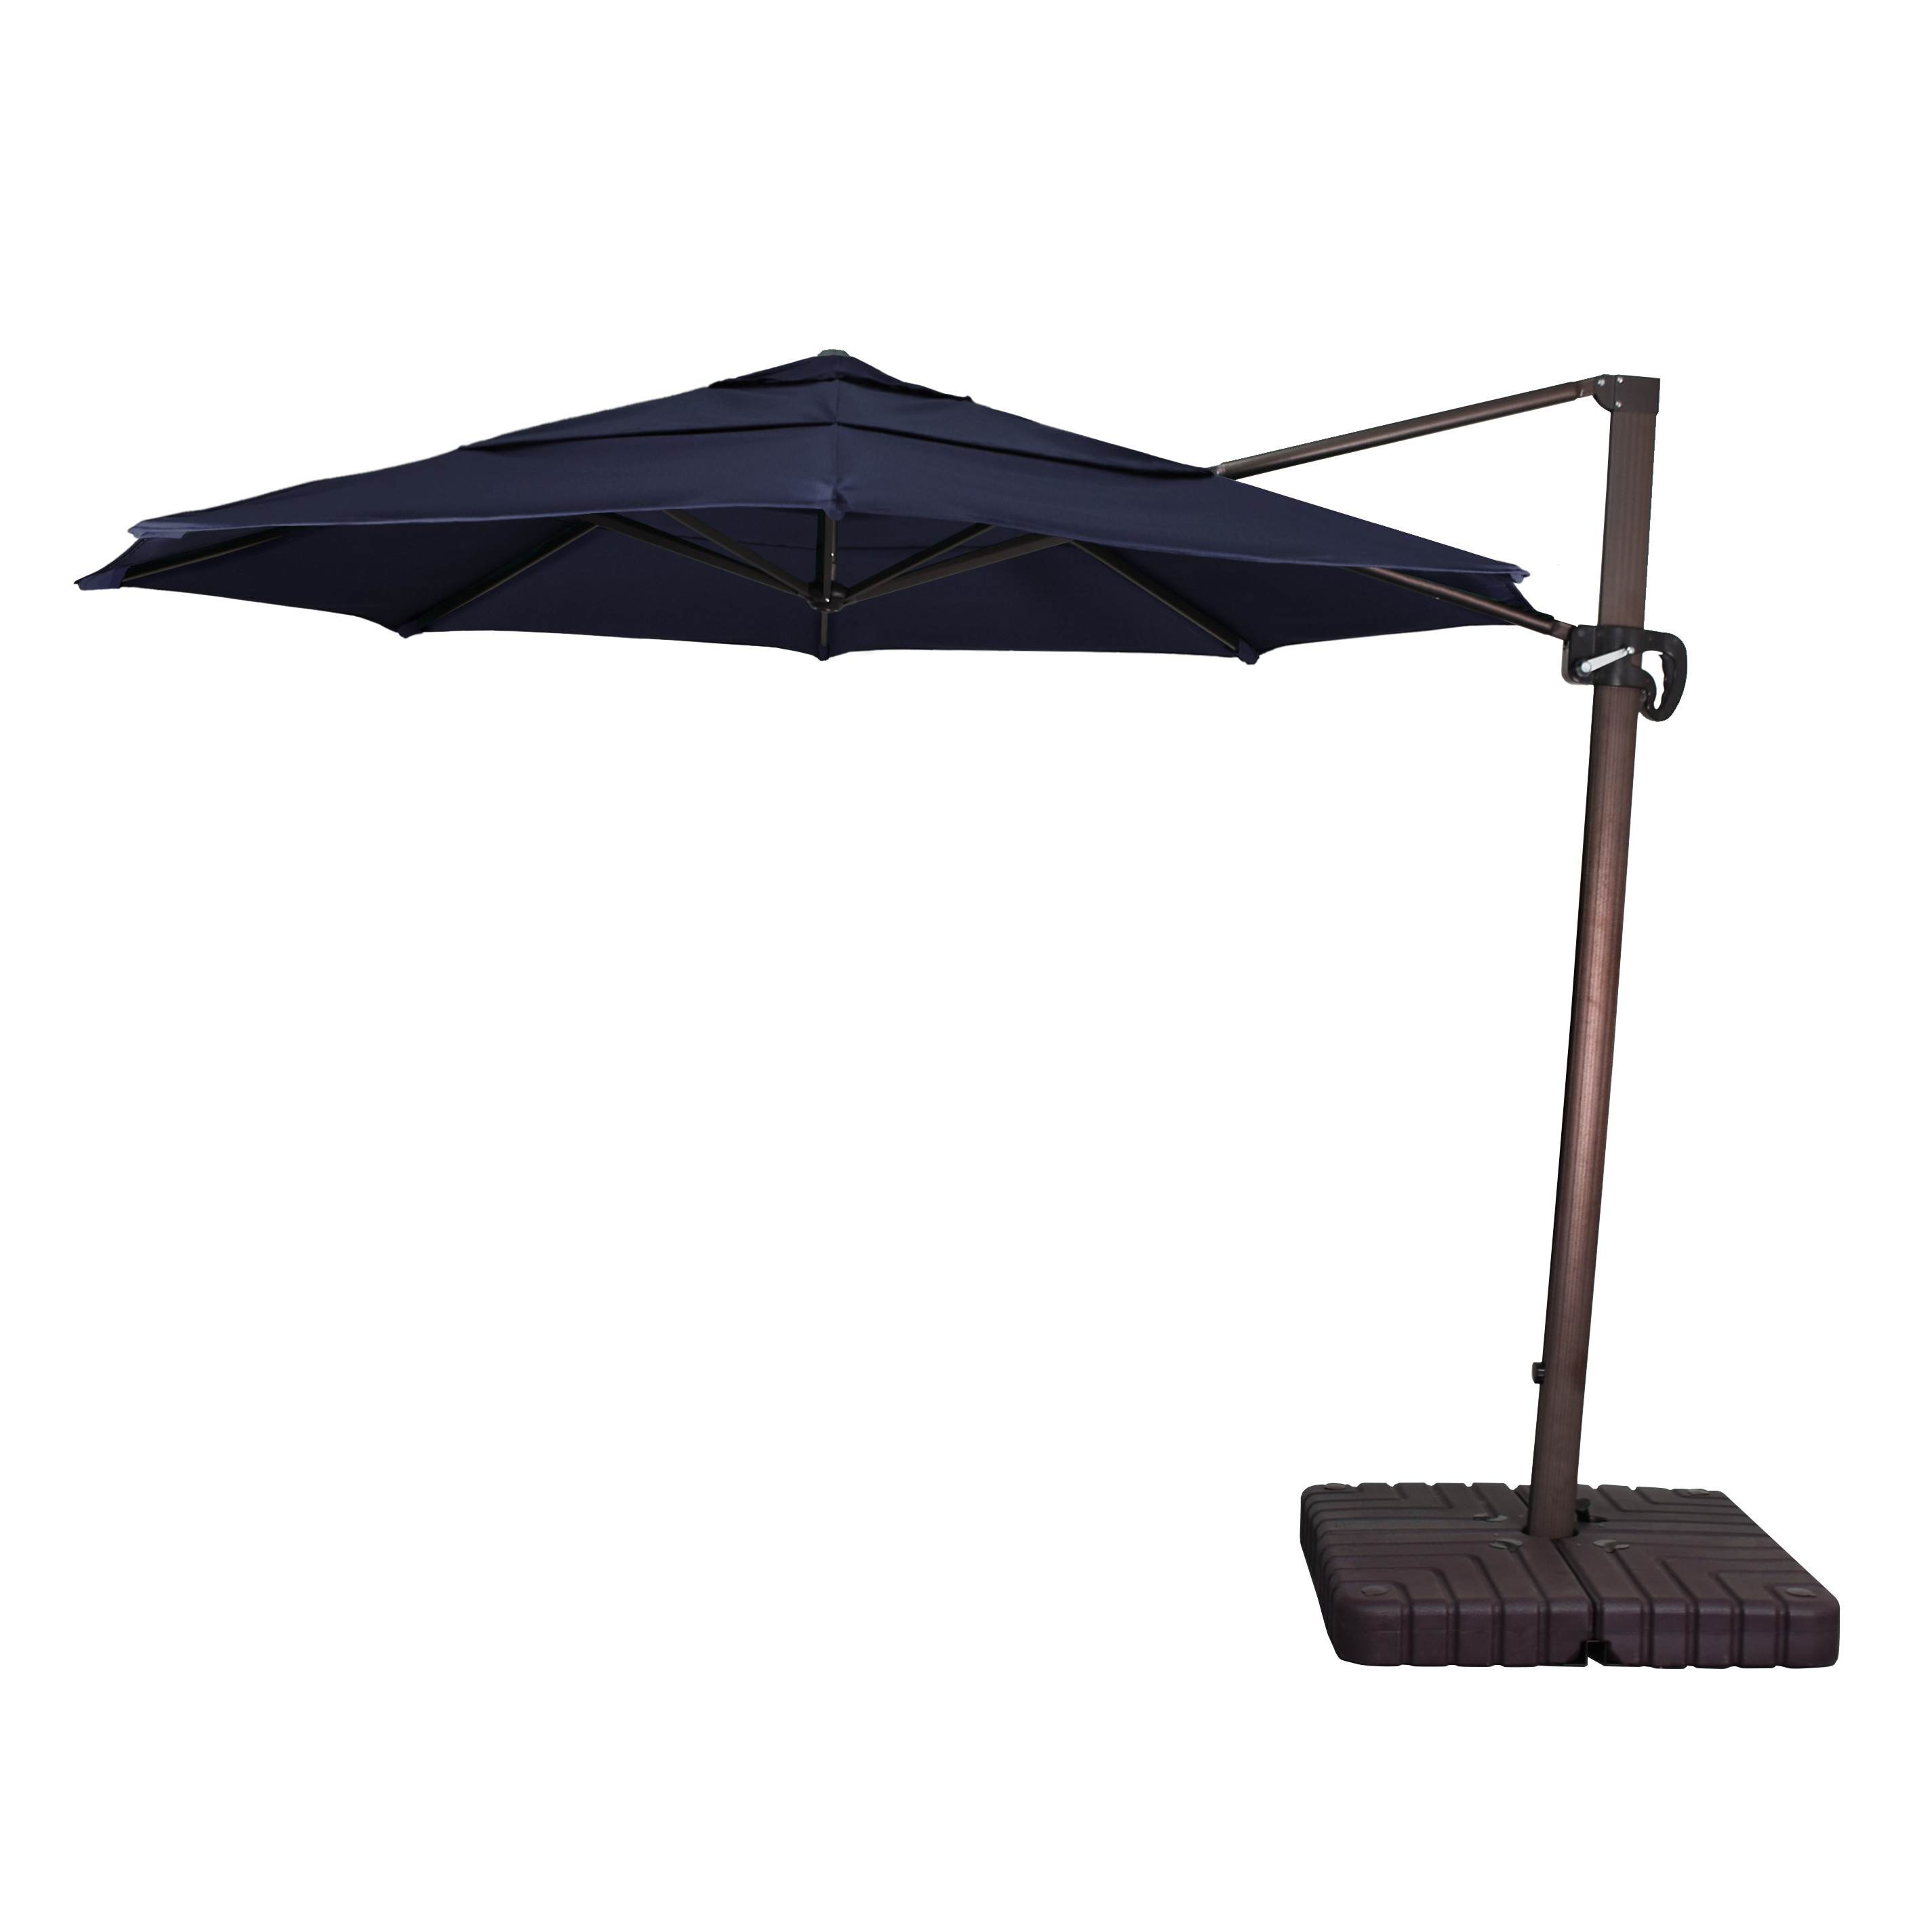 Carlisle 11' Cantilever Sunbrella Umbrella Pertaining To 2020 Cora Square Cantilever Umbrellas (View 14 of 20)